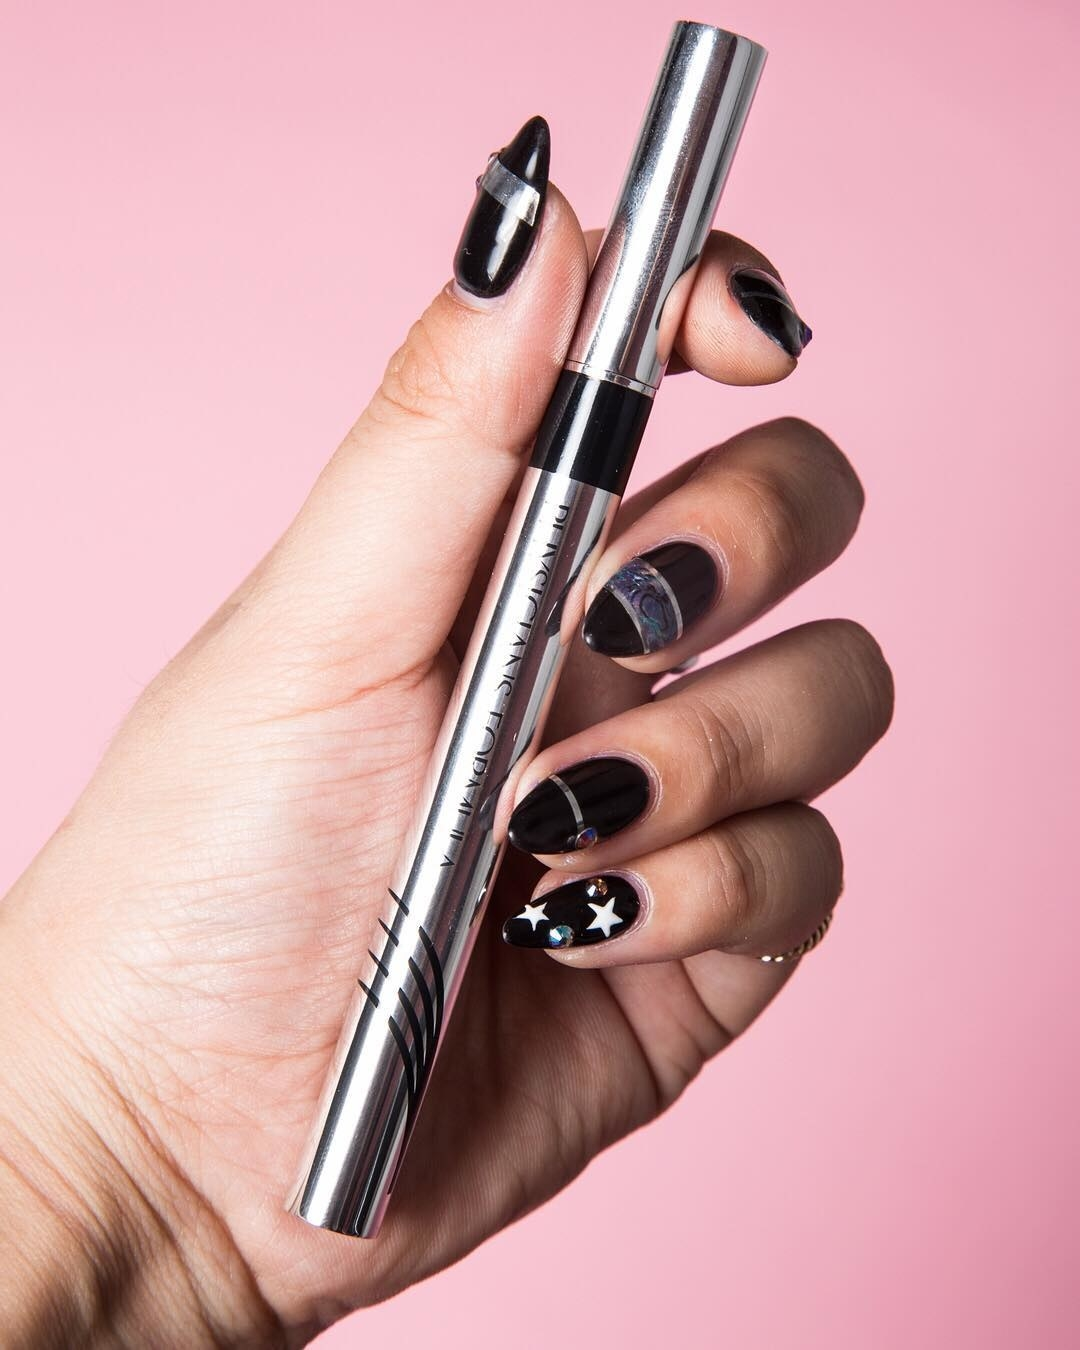 A person holds the eyeliner in their hand